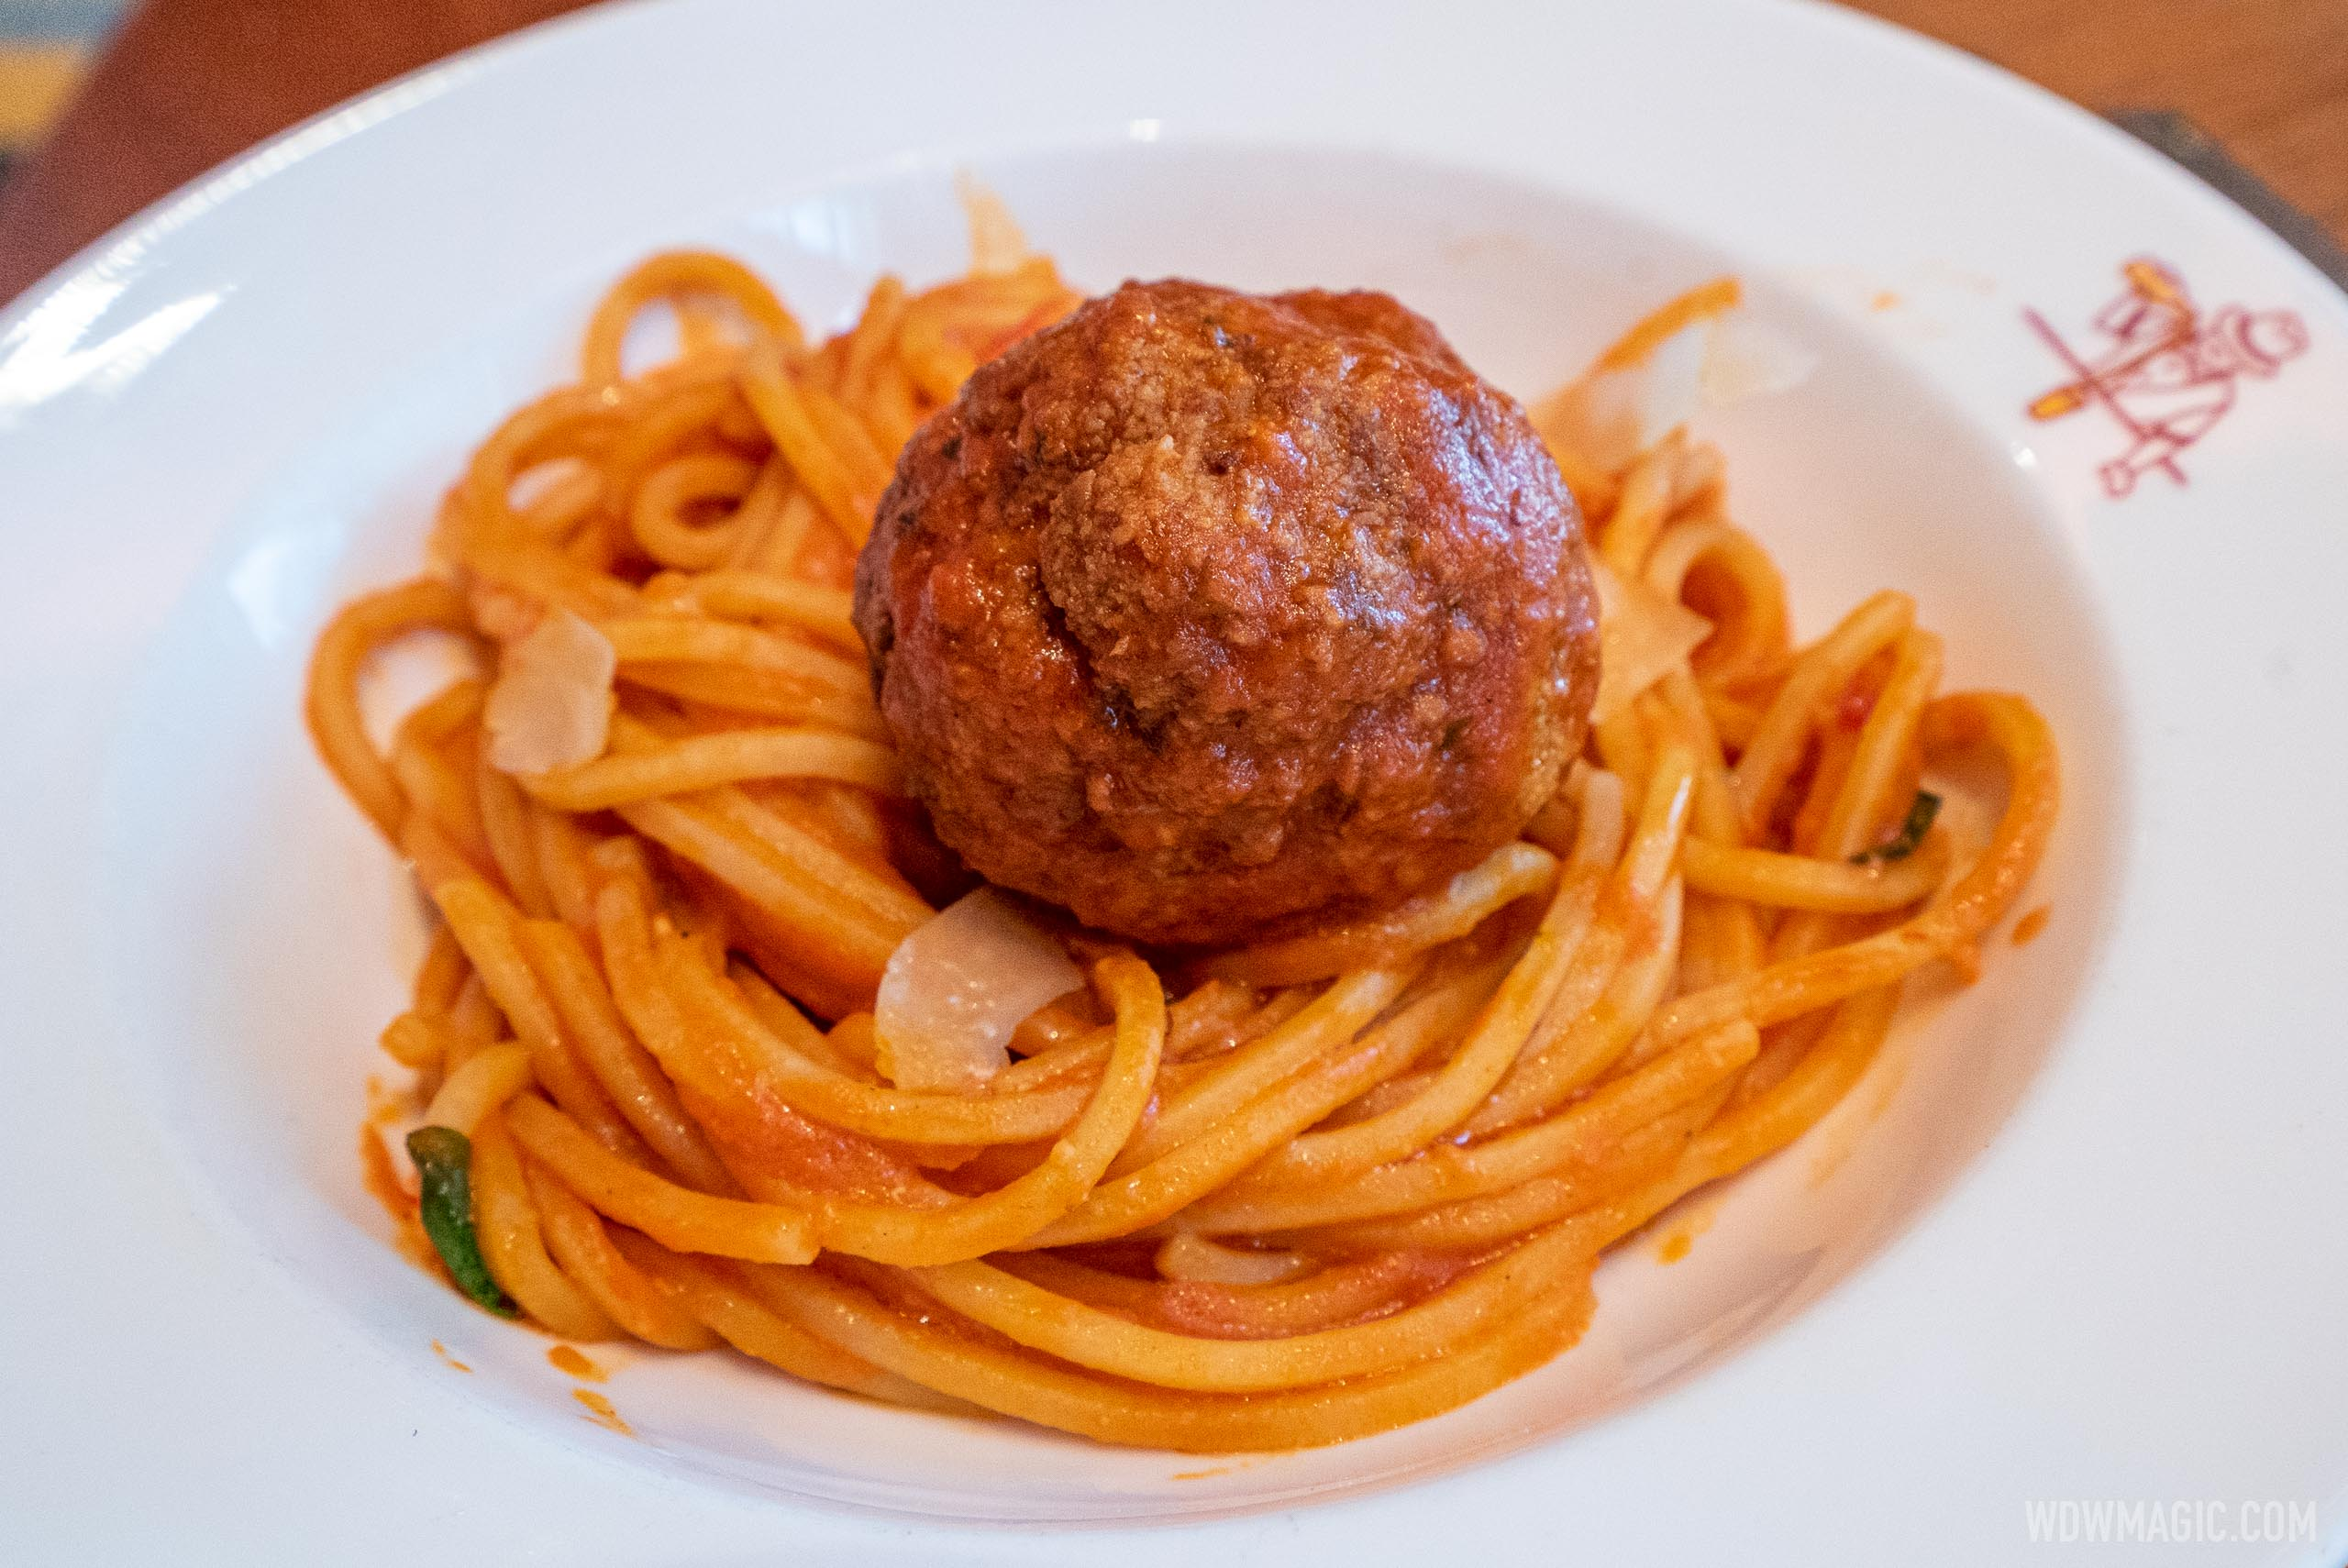 Maria and Enzo's food and drink - Spaghetti and Meatball